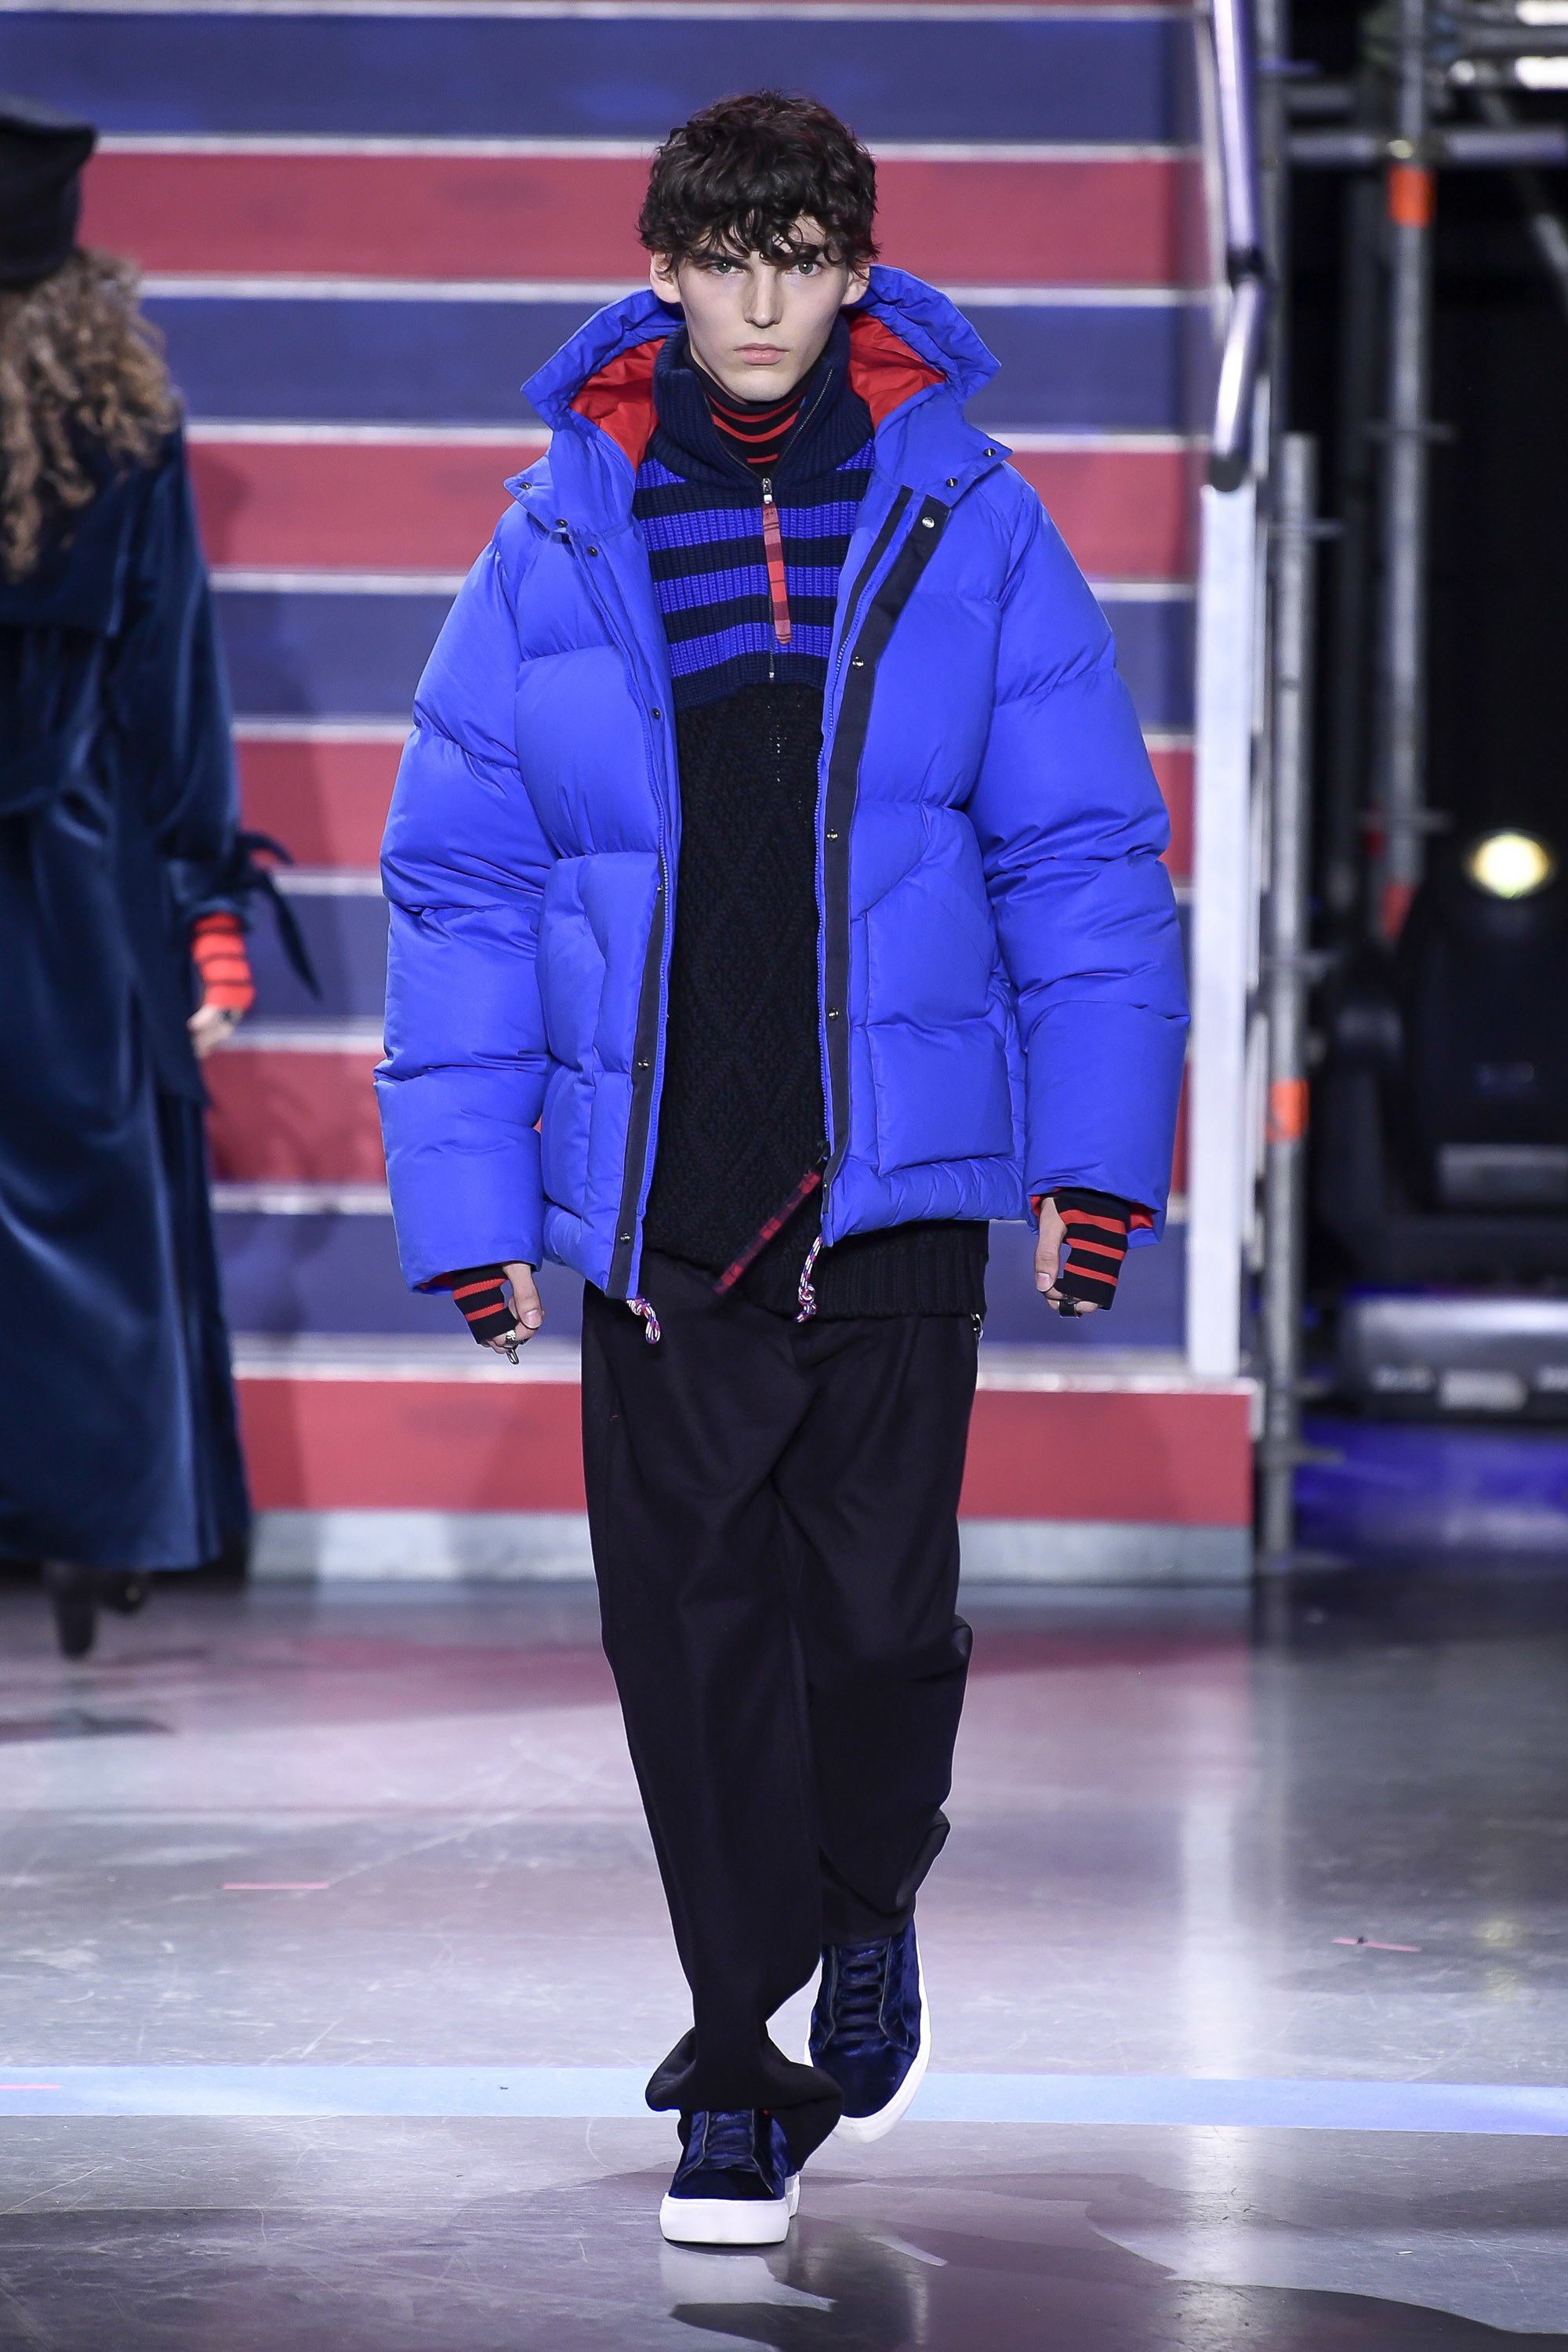 LFW: Tommy Hilfiger Autumn/Winter 2017 Collection